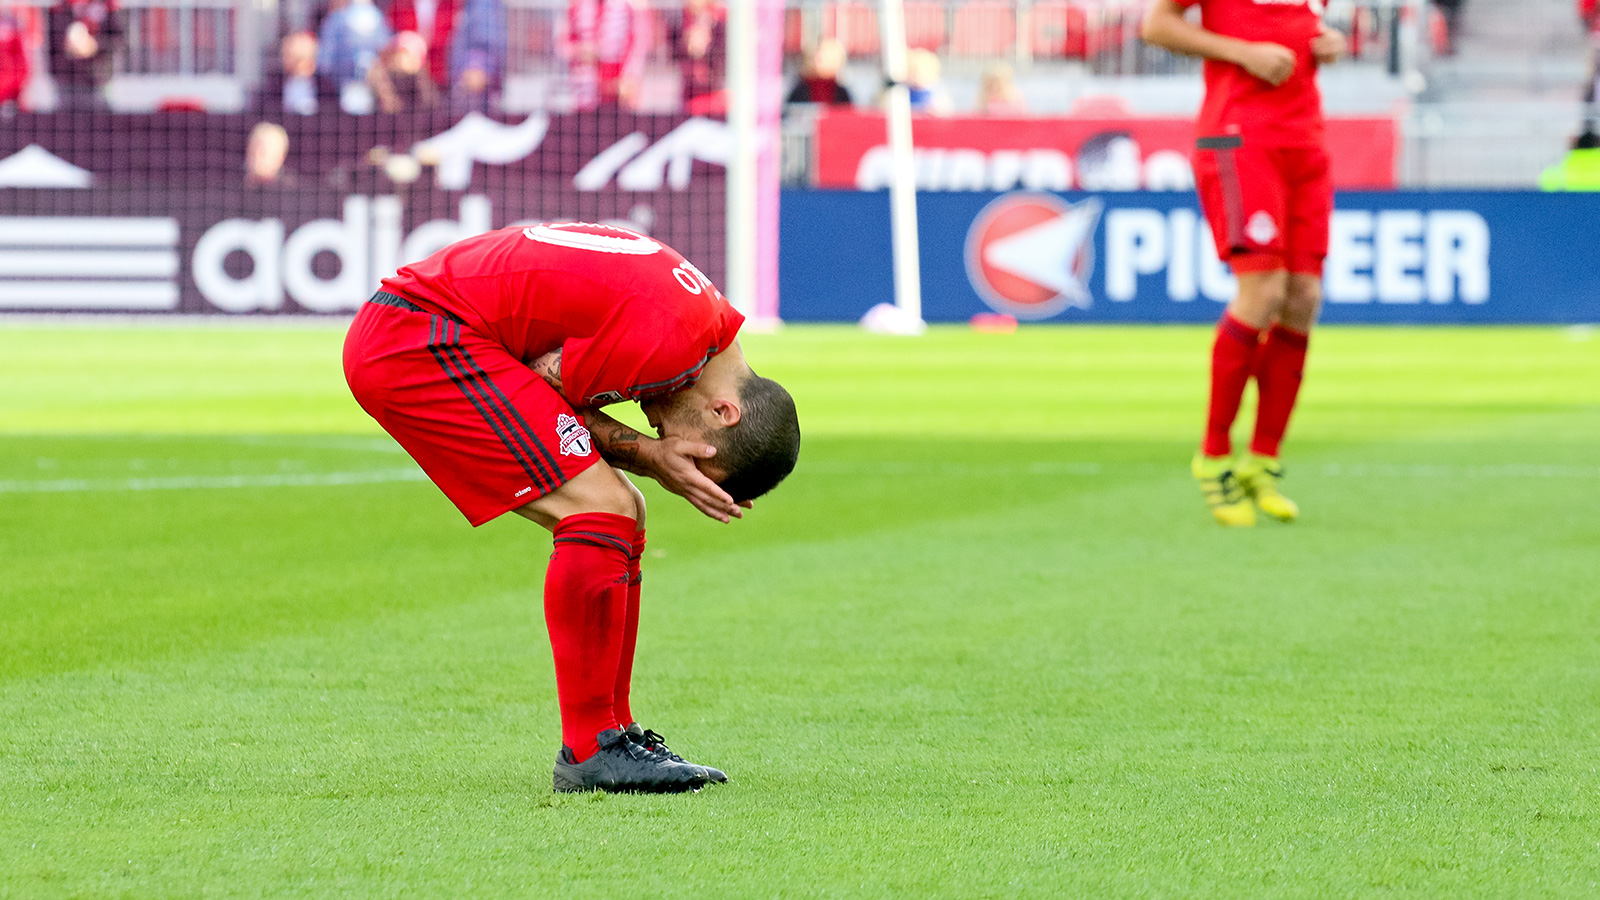 Giovinco misses a goal opportunity.